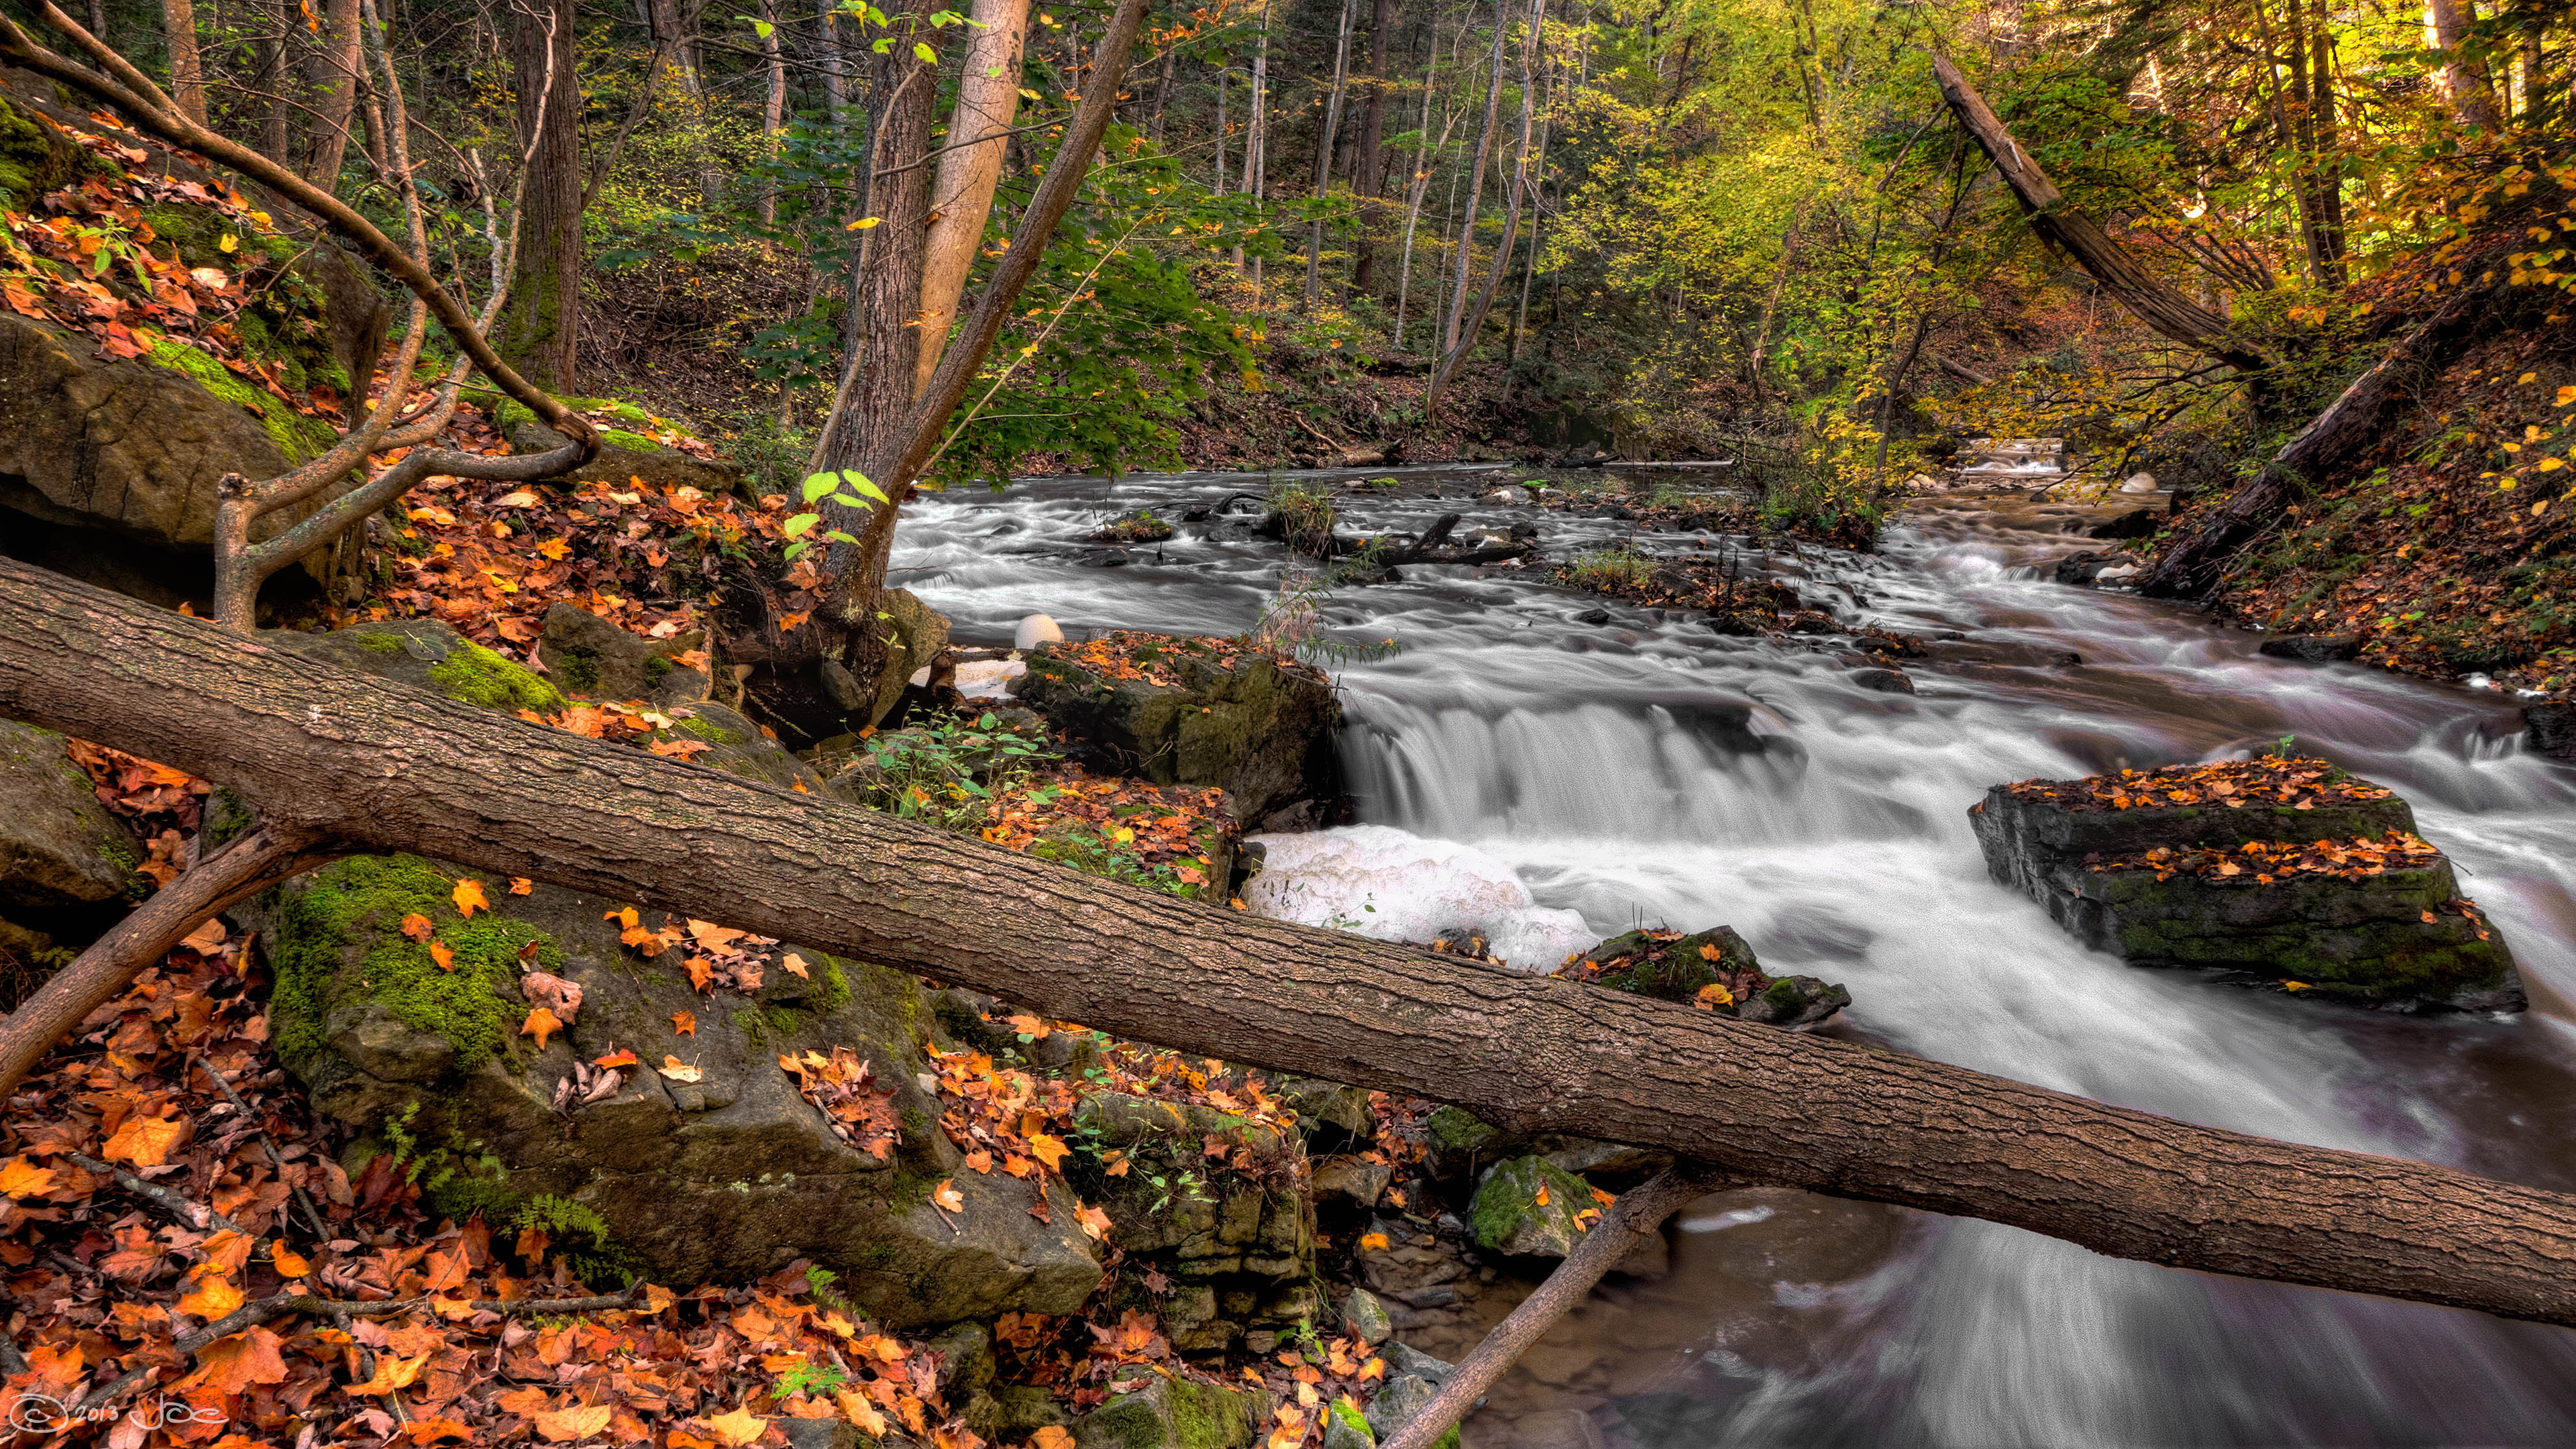 Free Early Fall Wallpaper Spencer Creek Dundas Webster S Falls Canada River In